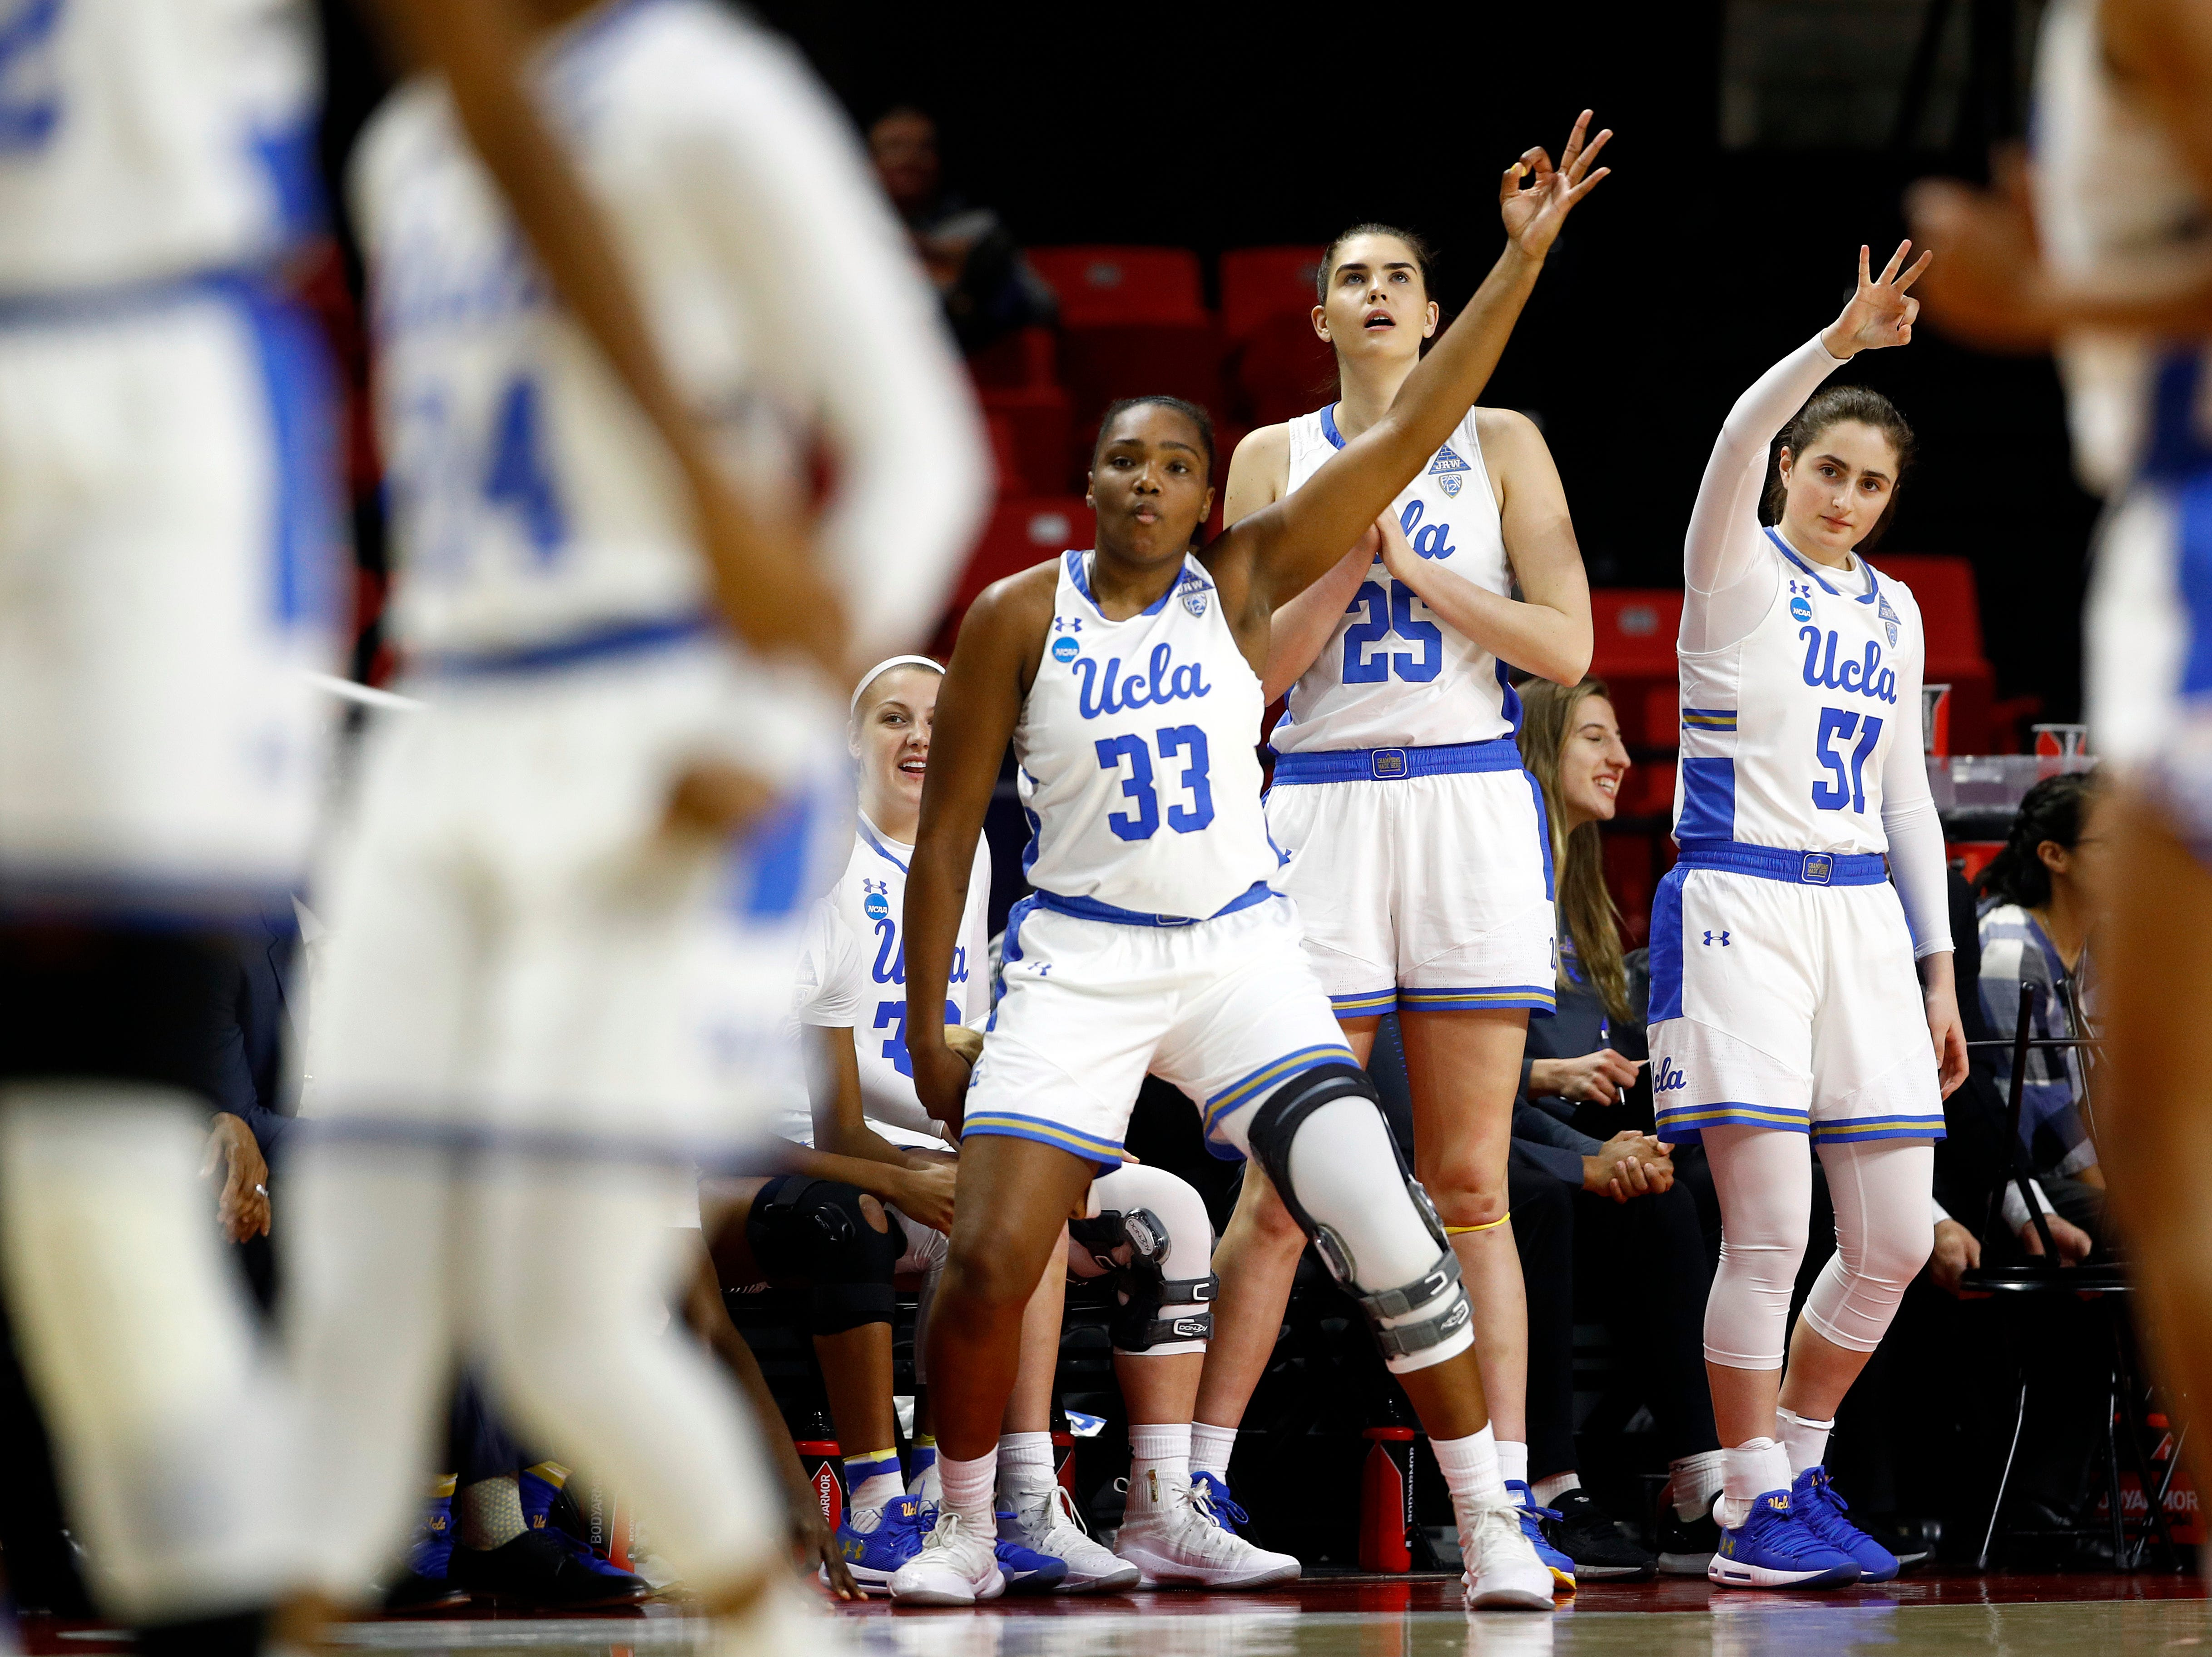 UCLA's Lauryn Miller (33), Shayley Harris (25) and Eliana Sigal (51) gesture after teammate Japreece Dean scored a 3-pointer in the first half of a first-round game against Tennessee in the NCAA women's college basketball tournament, Saturday, March 23, 2019, in College Park, Md.